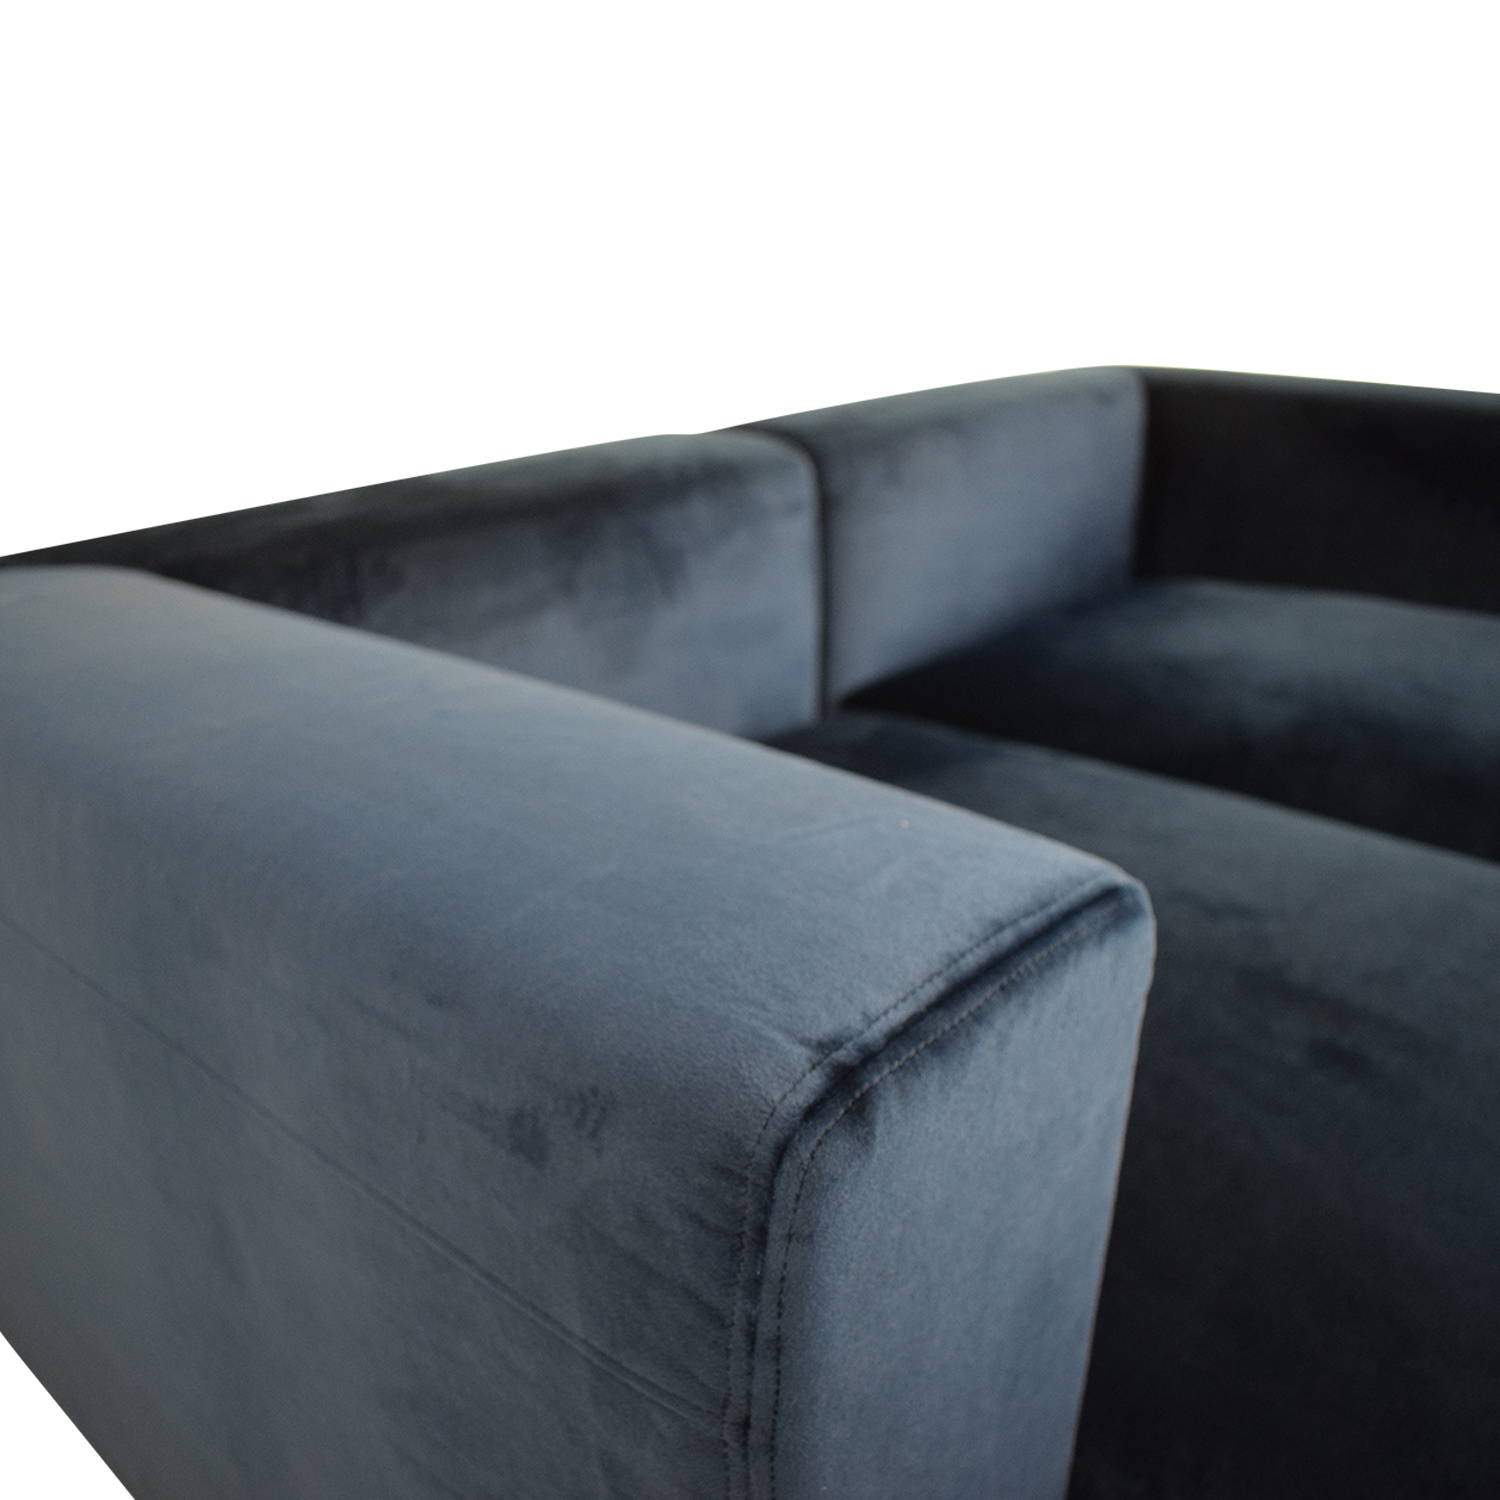 Interior Define Toby Velvet Oxford Blue Double Chaise Sectional Sofa used